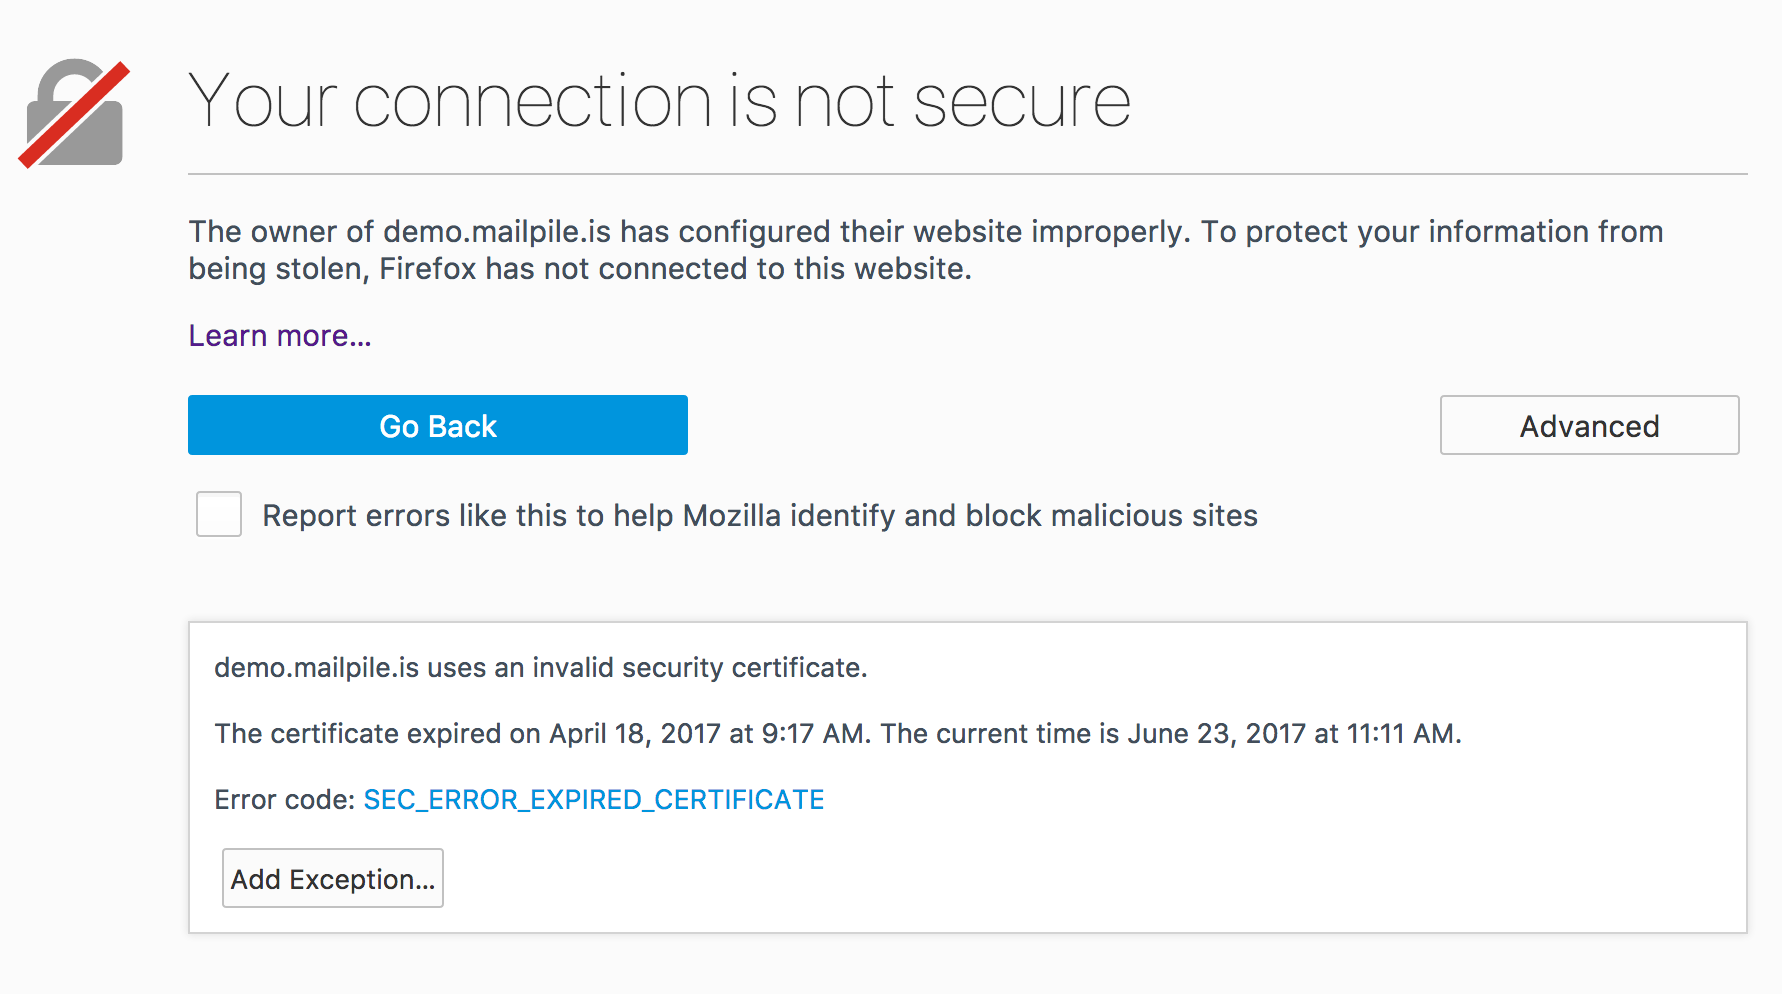 Ssl Cert For Demo Has Expired Issue 1853 Mailpilemailpile Github